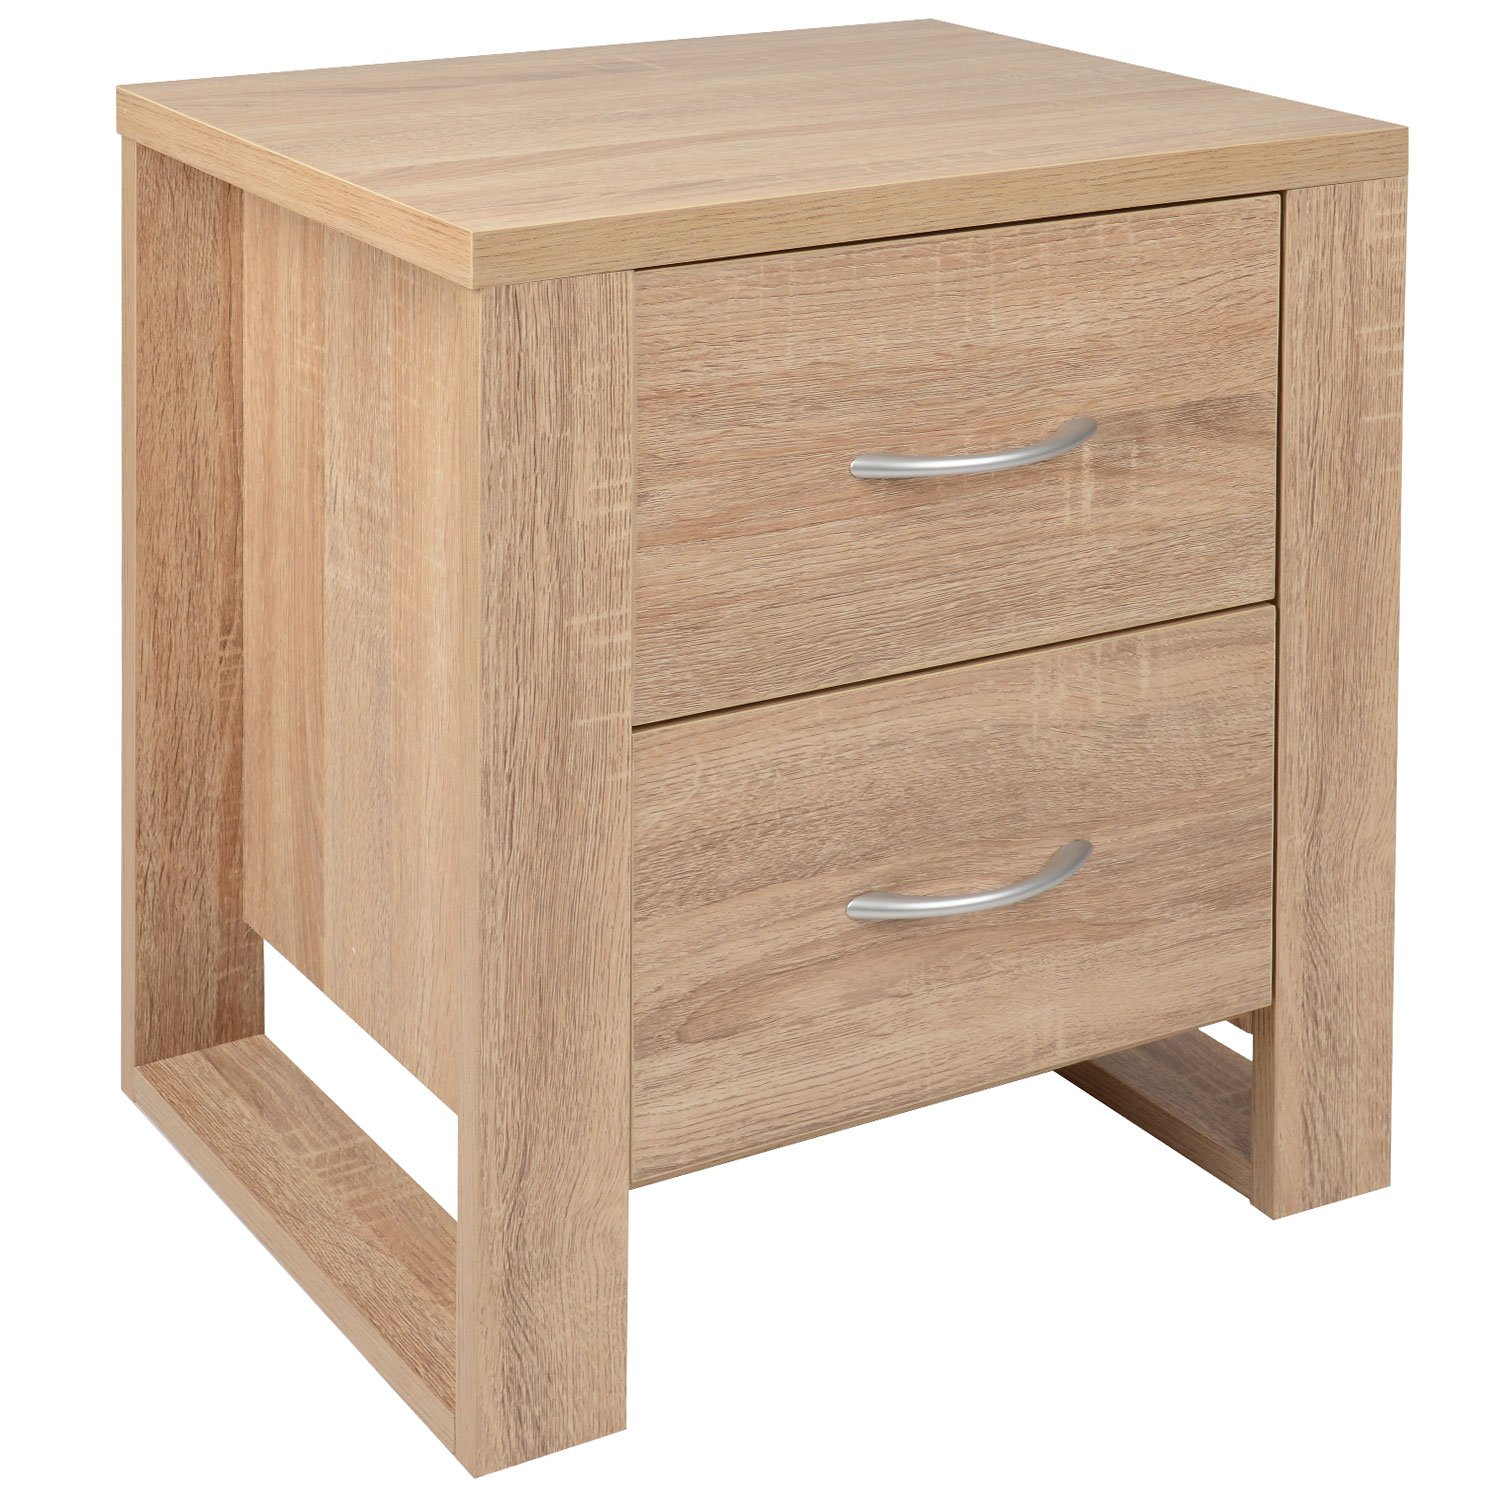 Christow Oak Effect 2 Drawer Bedside Table Bedroom Cabinet Nightstand H54cm Amazon.co.uk Kitchen u0026 Home  sc 1 st  Amazon UK & Christow Oak Effect 2 Drawer Bedside Table Bedroom Cabinet ...